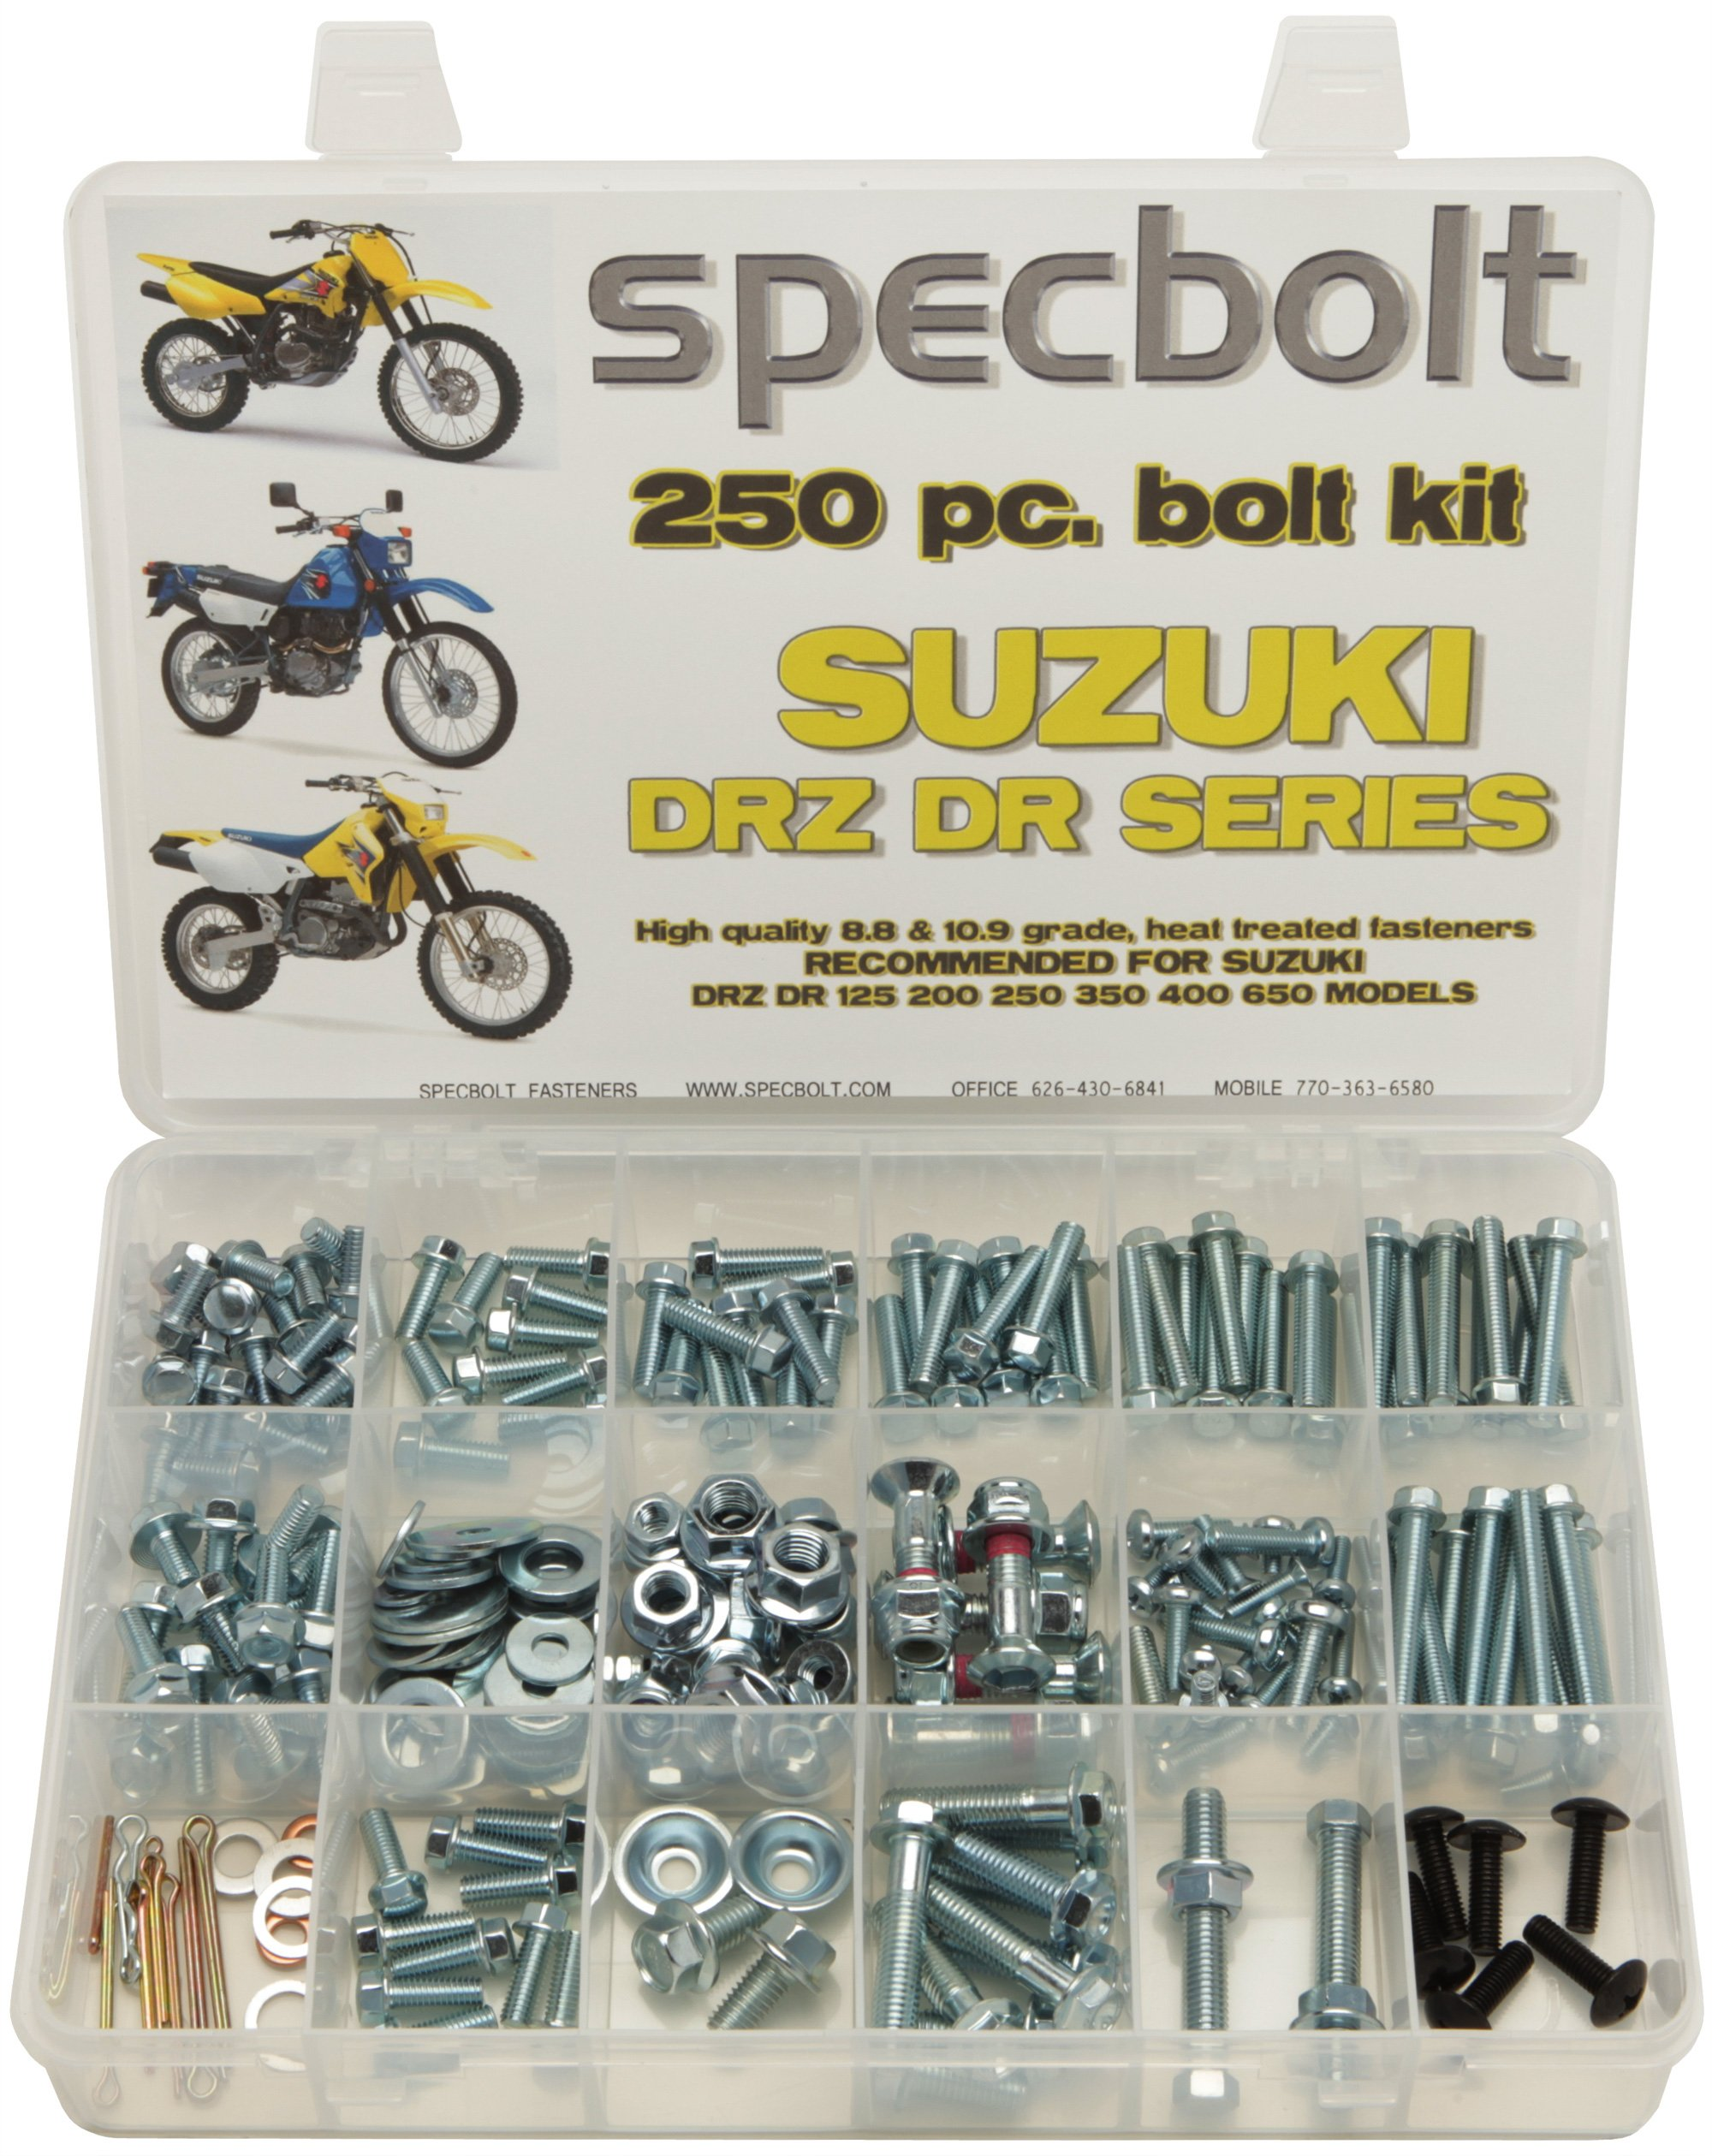 250pc Specbolt Suzuki DRZ DR four stroke Bolt Kit for Maintenance & Restoration of DRZ400 using OEM Spec Fastener DR-Z DR 70 100 110 125 200 250 350 400 650 DRZ SM